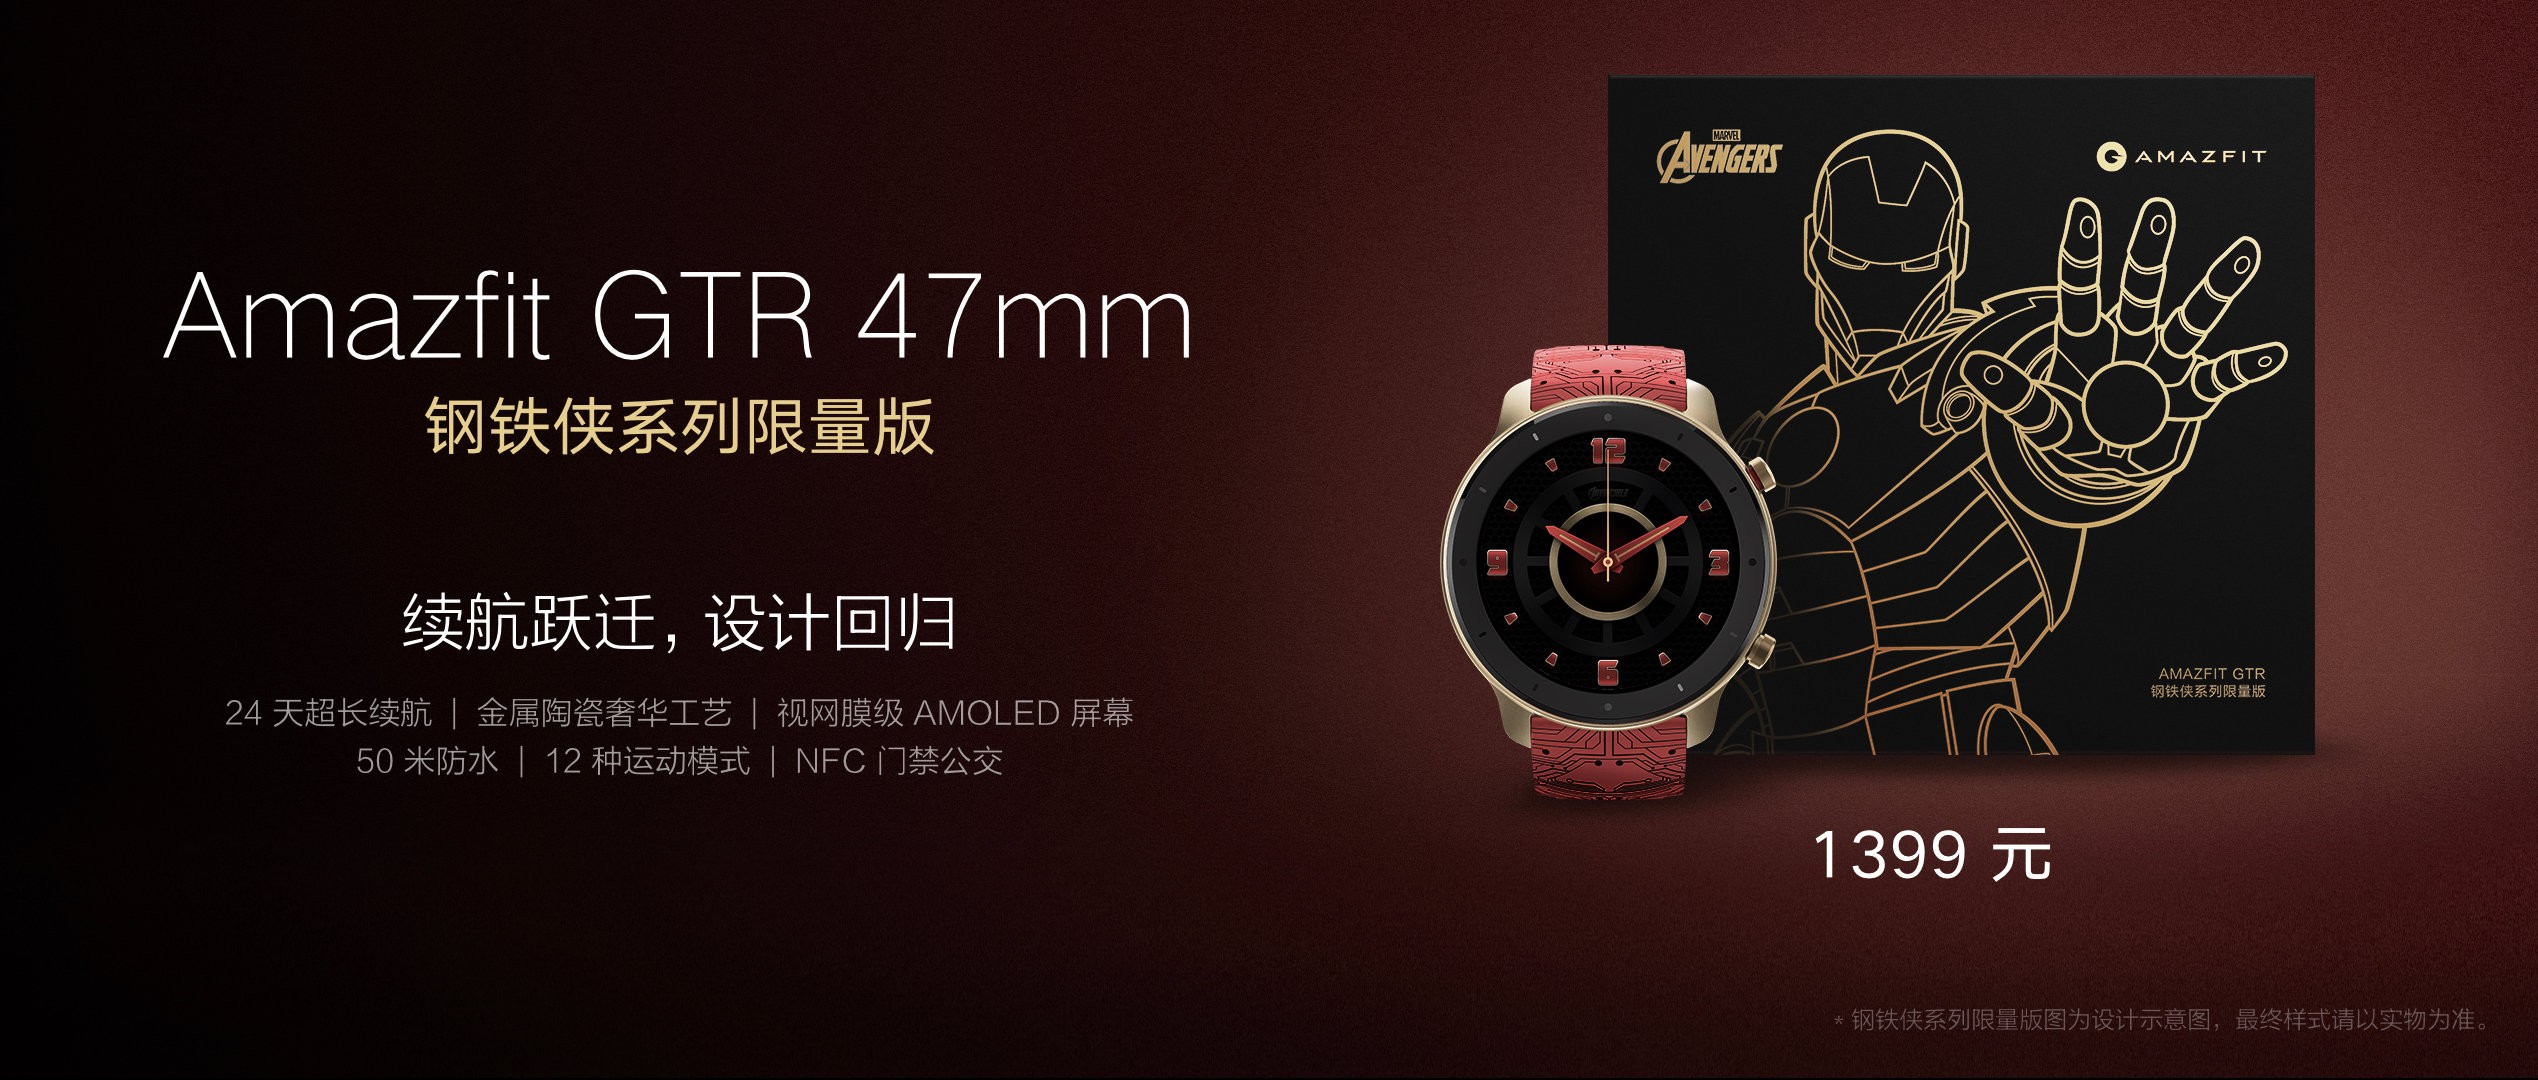 Huami Amazfit GTR 47mm Ironman Edition Price